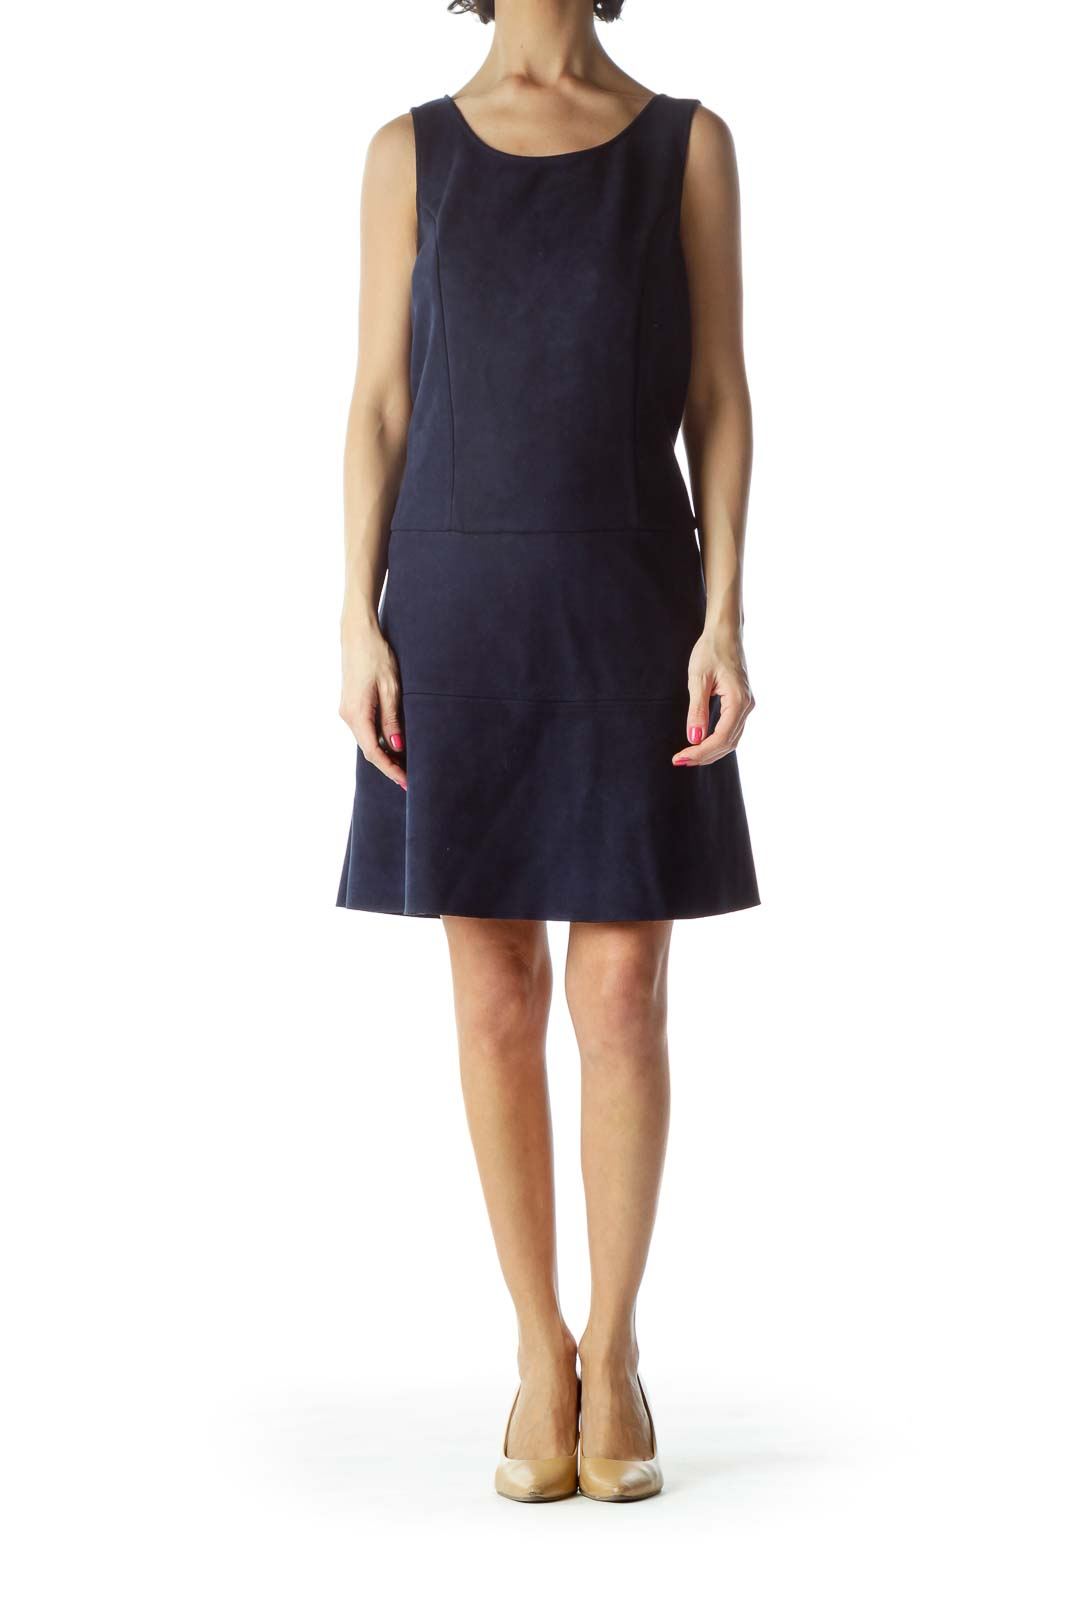 Navy Sleeveless Faux-Suede Work Dress